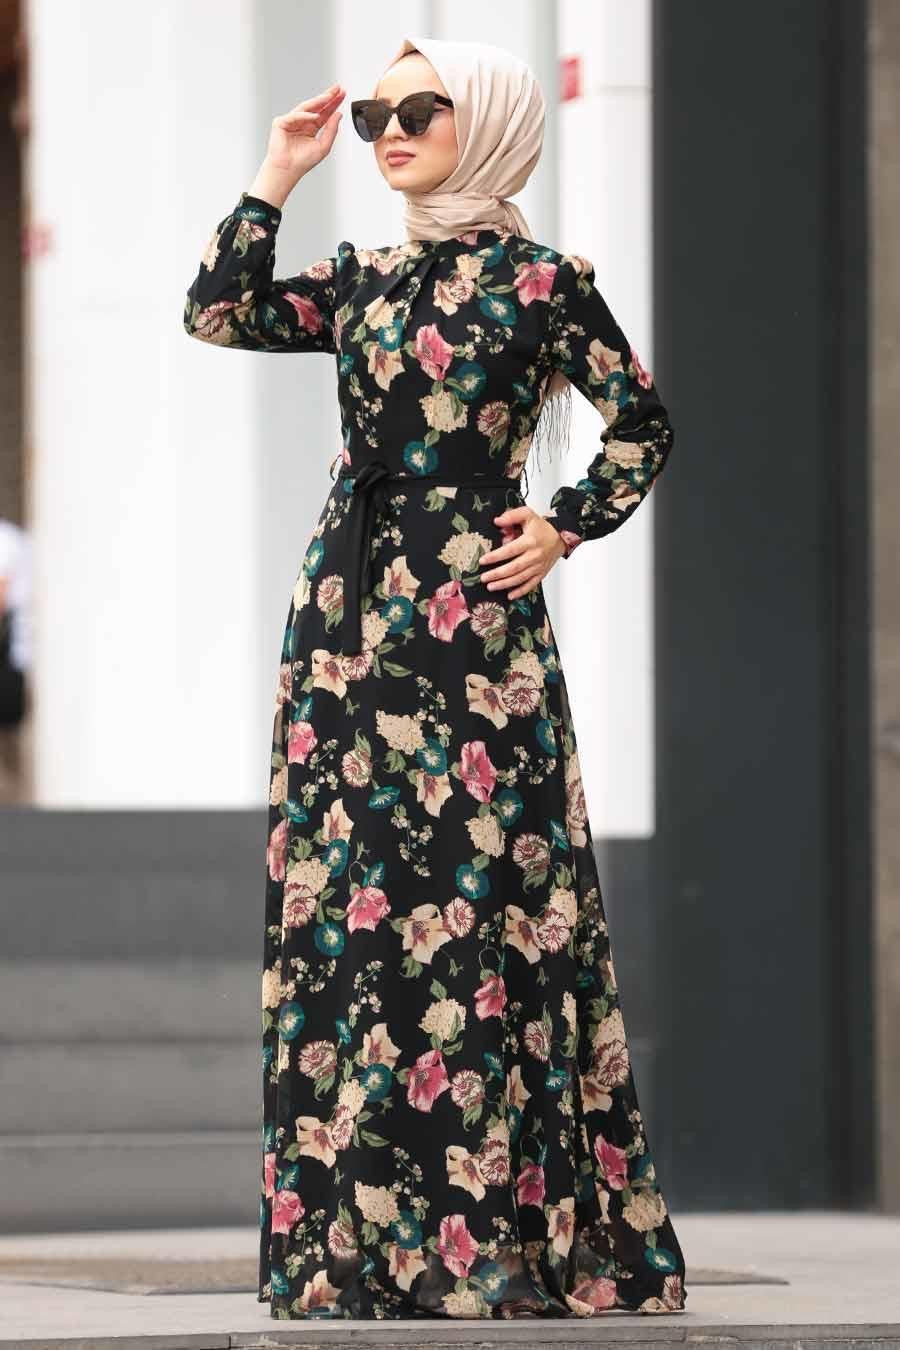 Summer nights floral chiffon dress